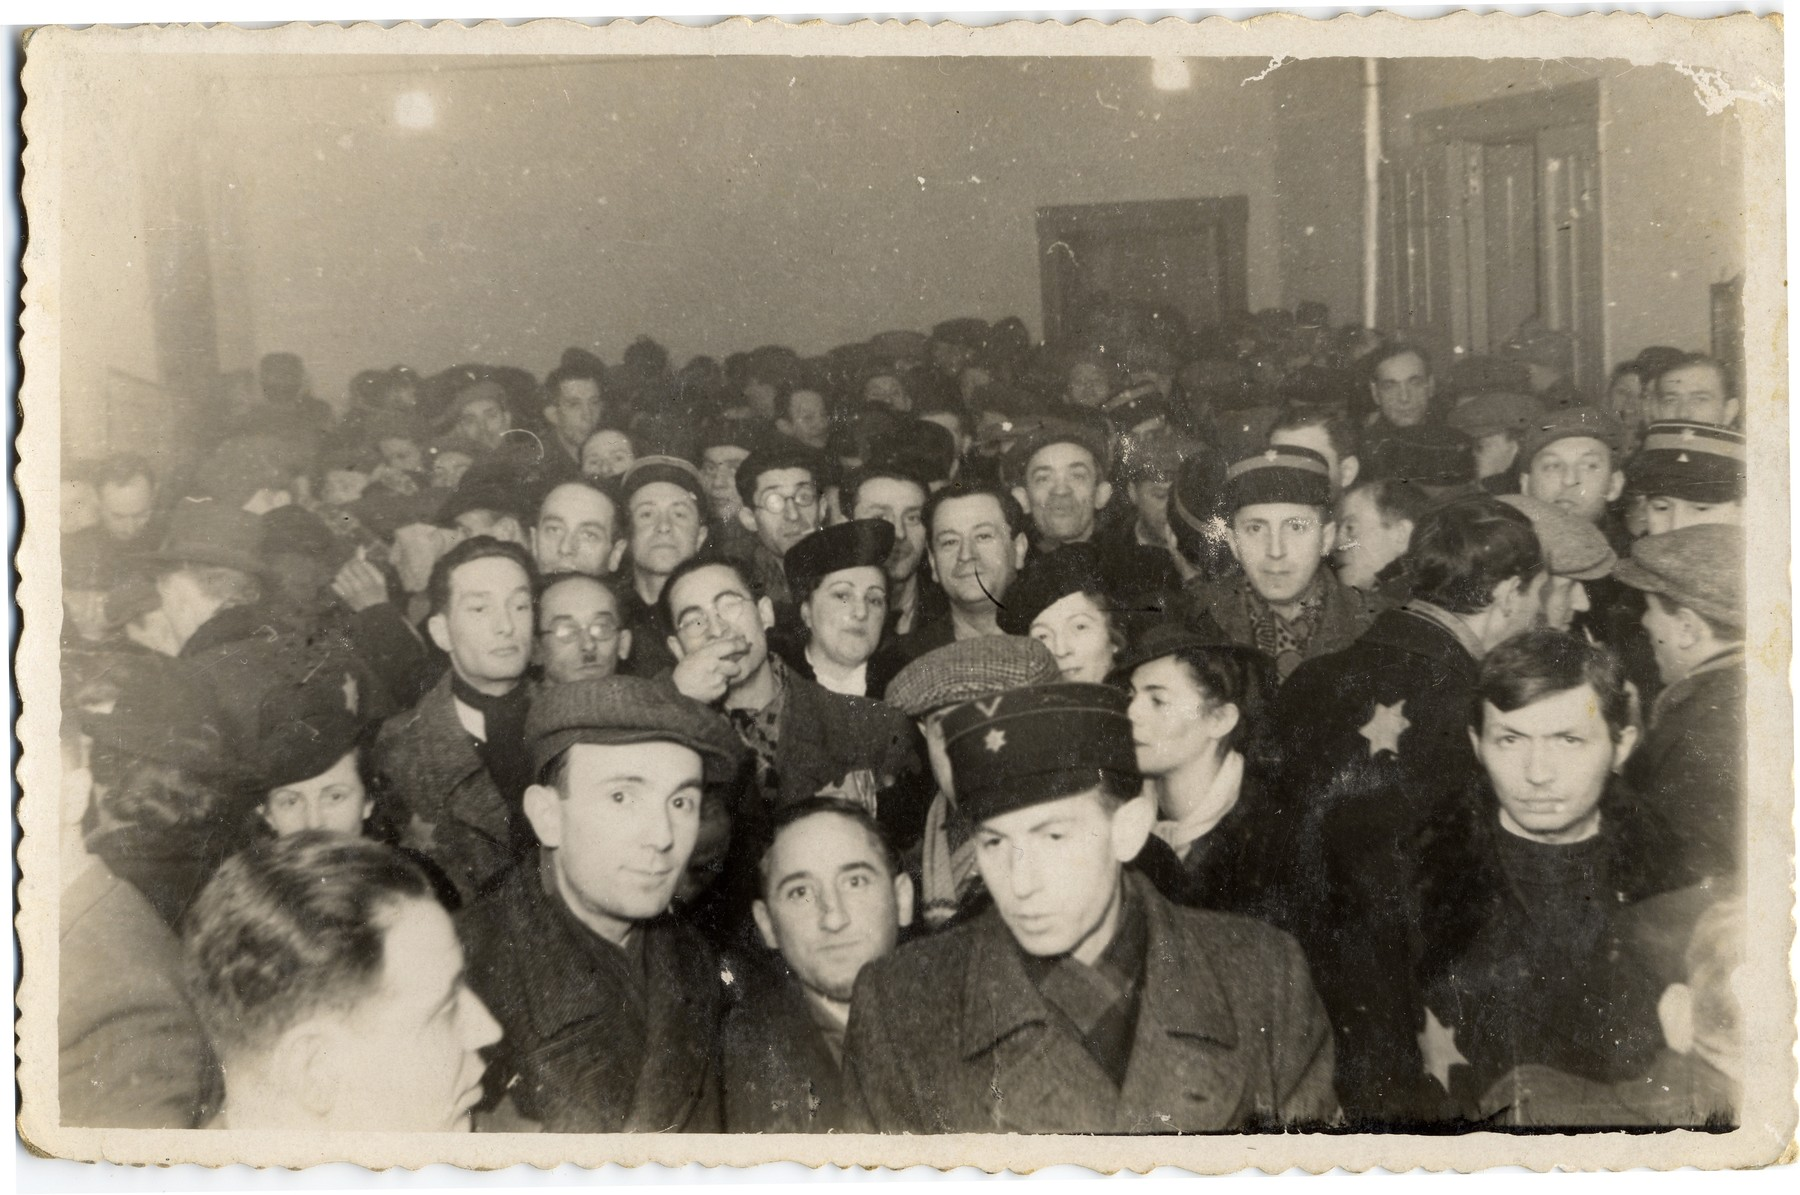 Jewish men and women wearing Stars of David, including several policeman, crowd together in a hall in the Lodz ghetto.